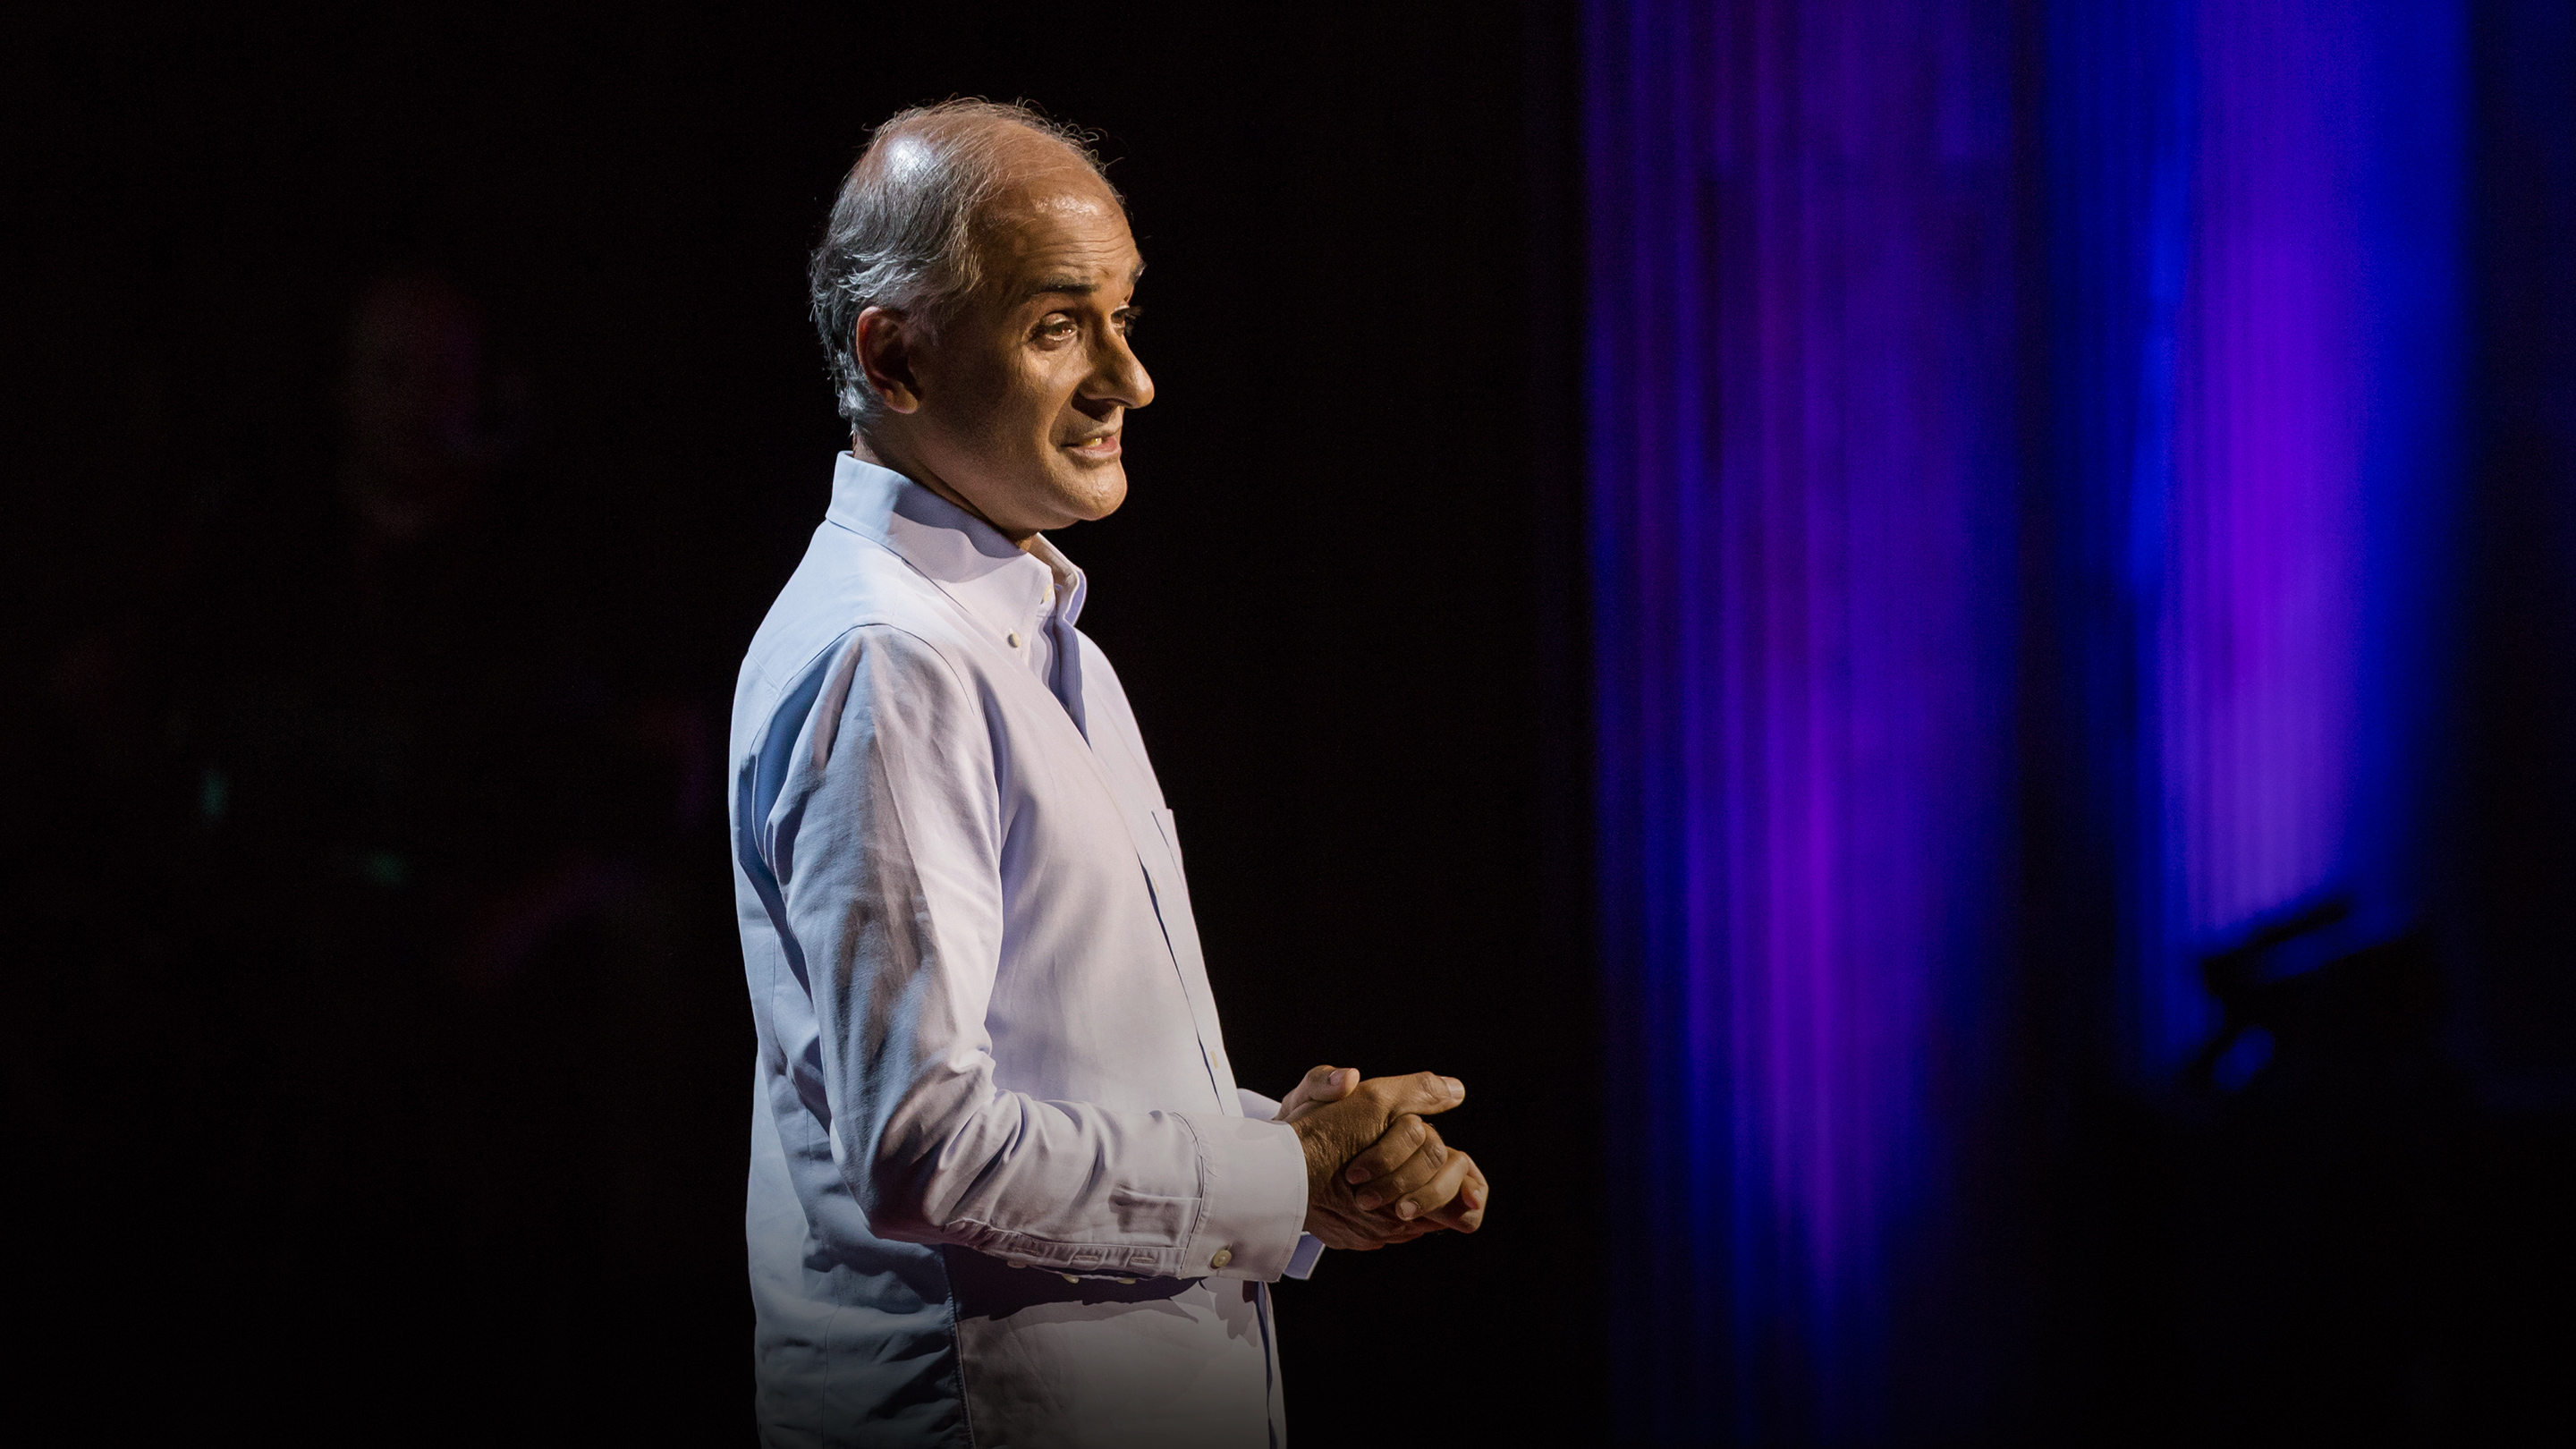 Adam Galinsky: How to speak up for yourself | TED Talk